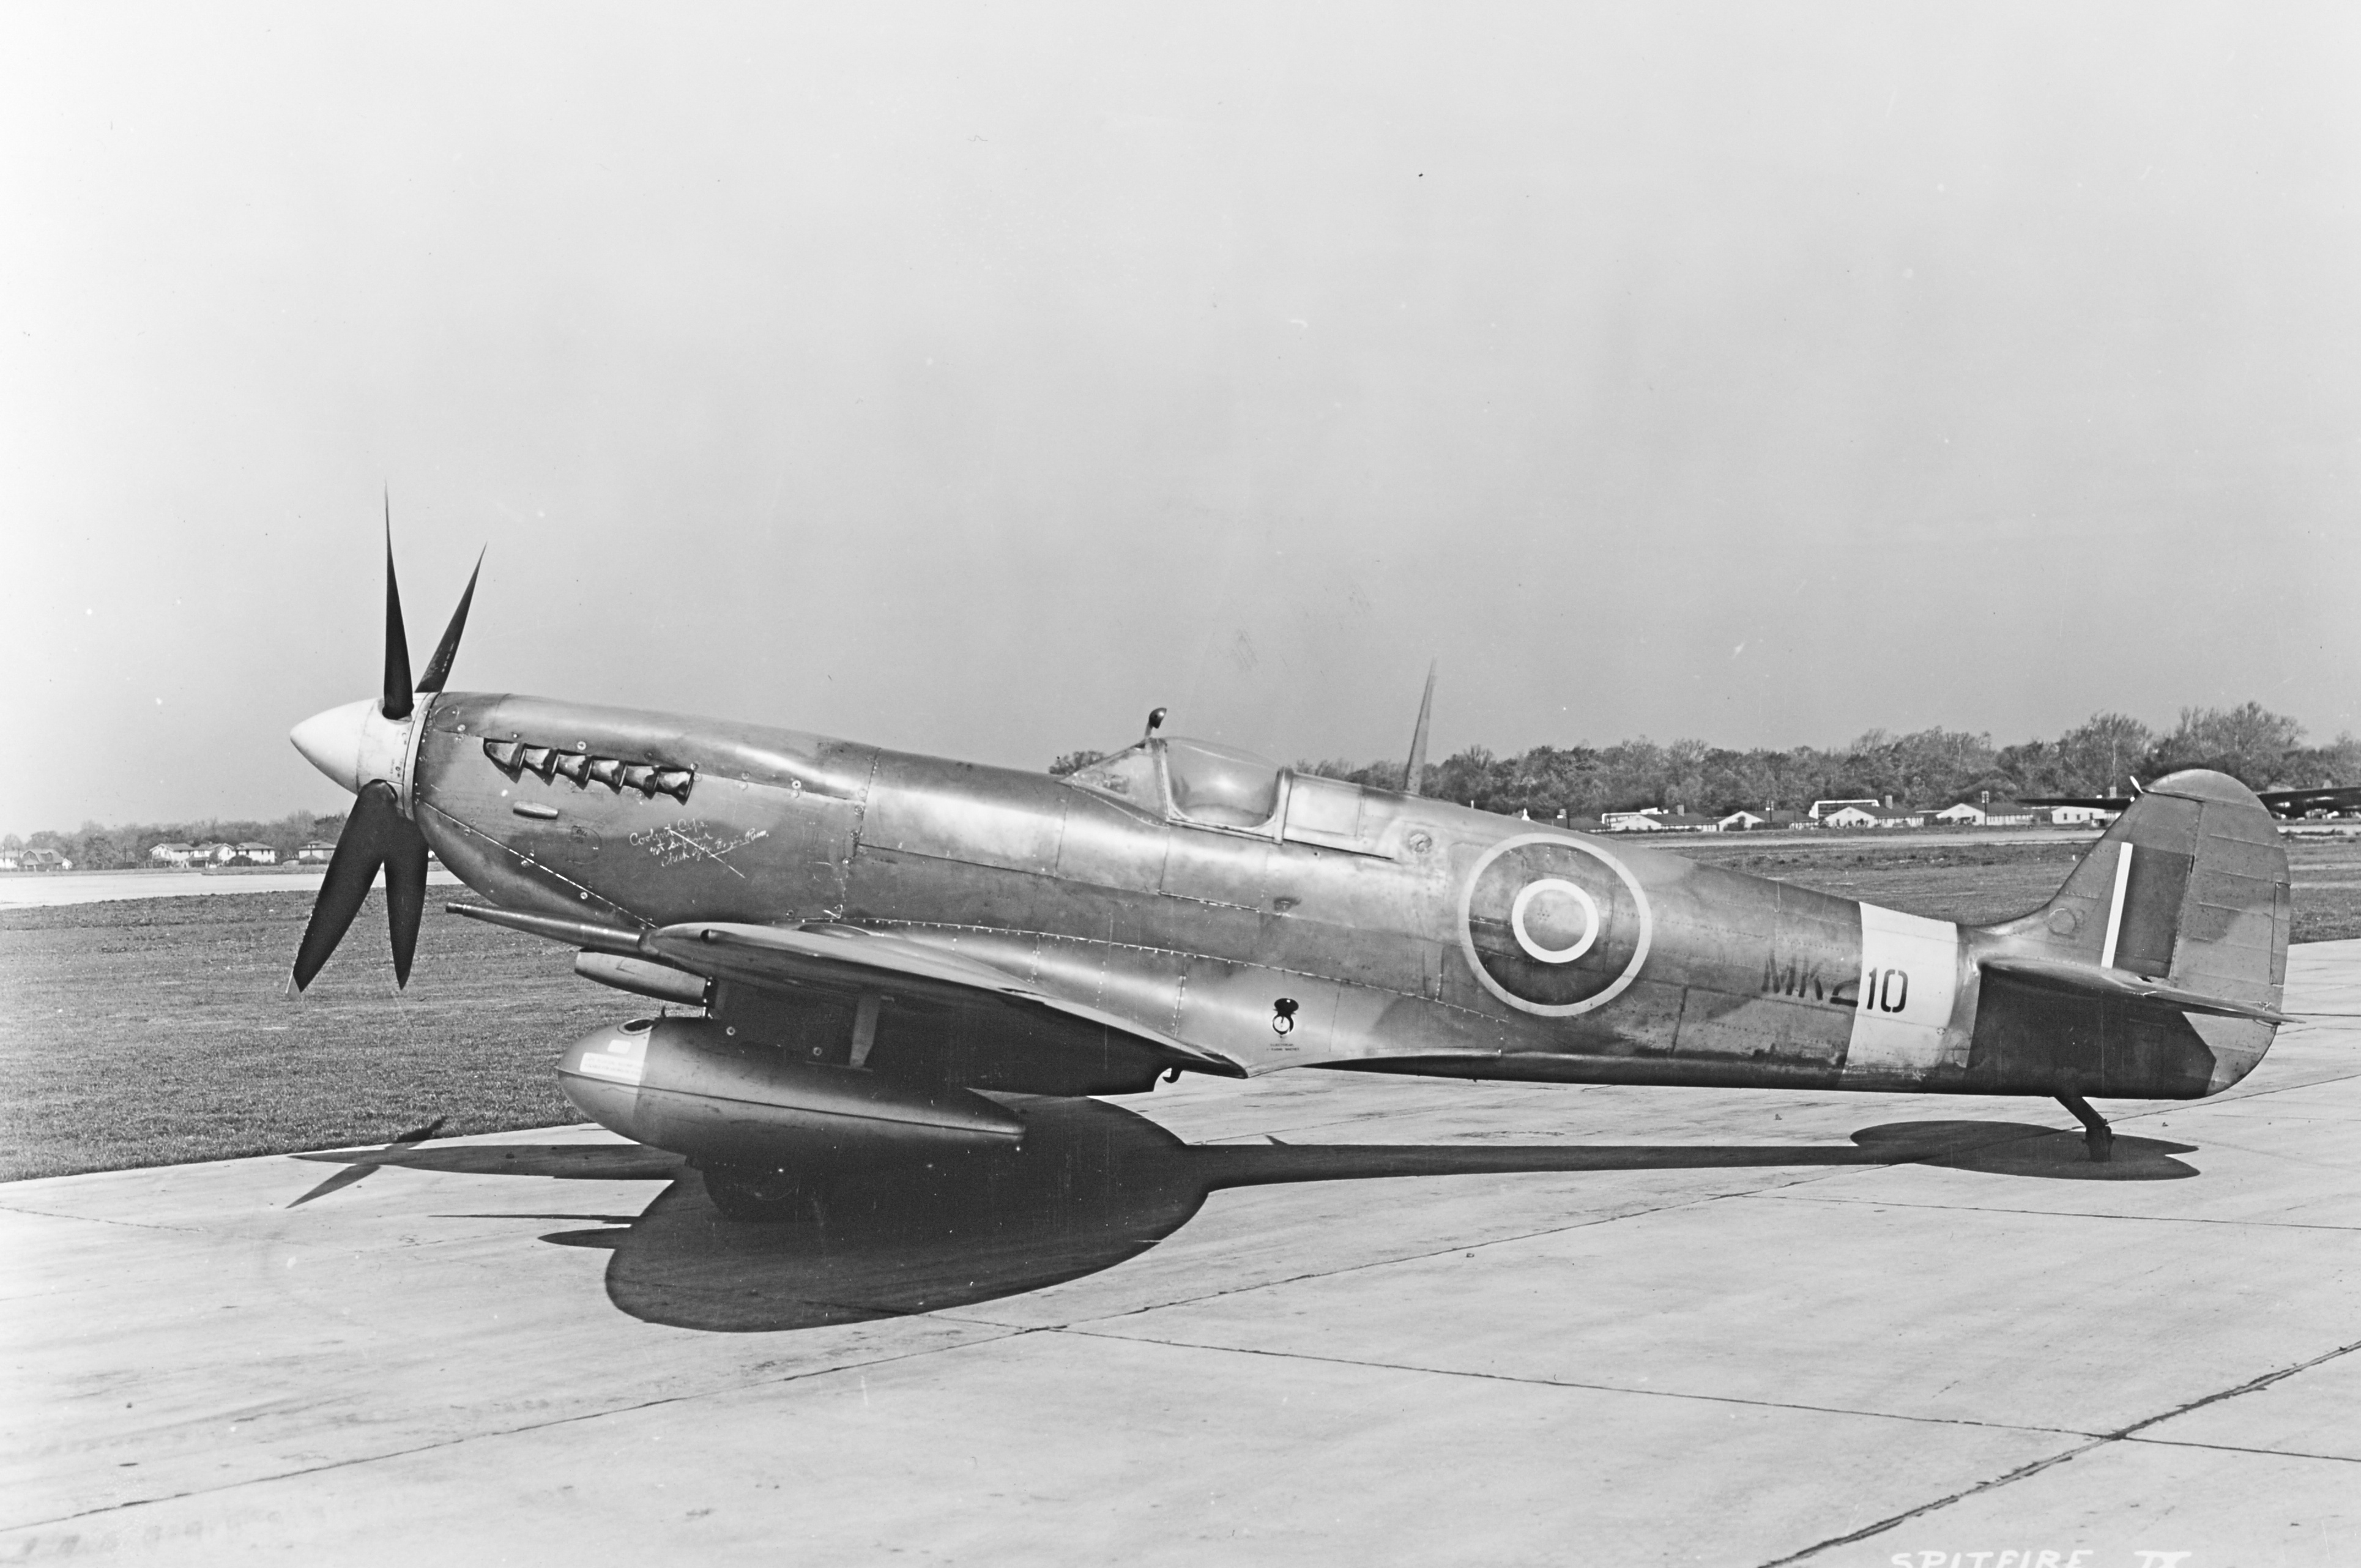 Spitfire 9 MK210 with 108 gallon US droptanks and internal tank 04